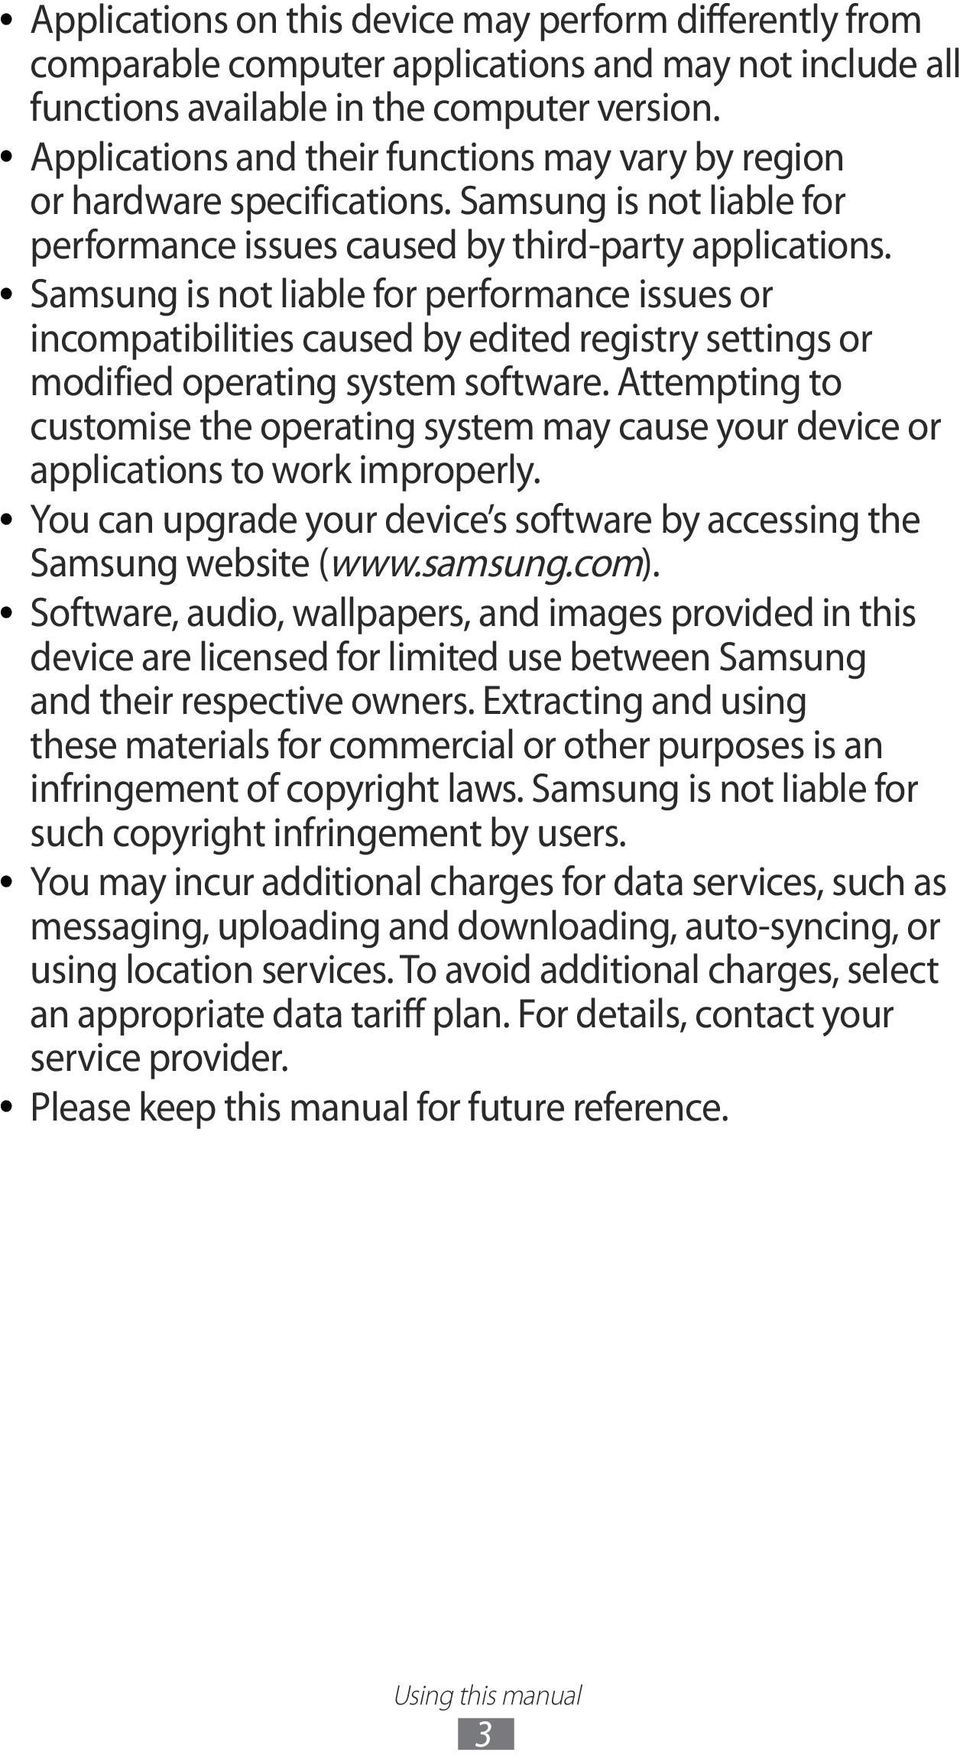 Samsung is not liable for performance issues or incompatibilities caused by edited registry settings or modified operating system software.